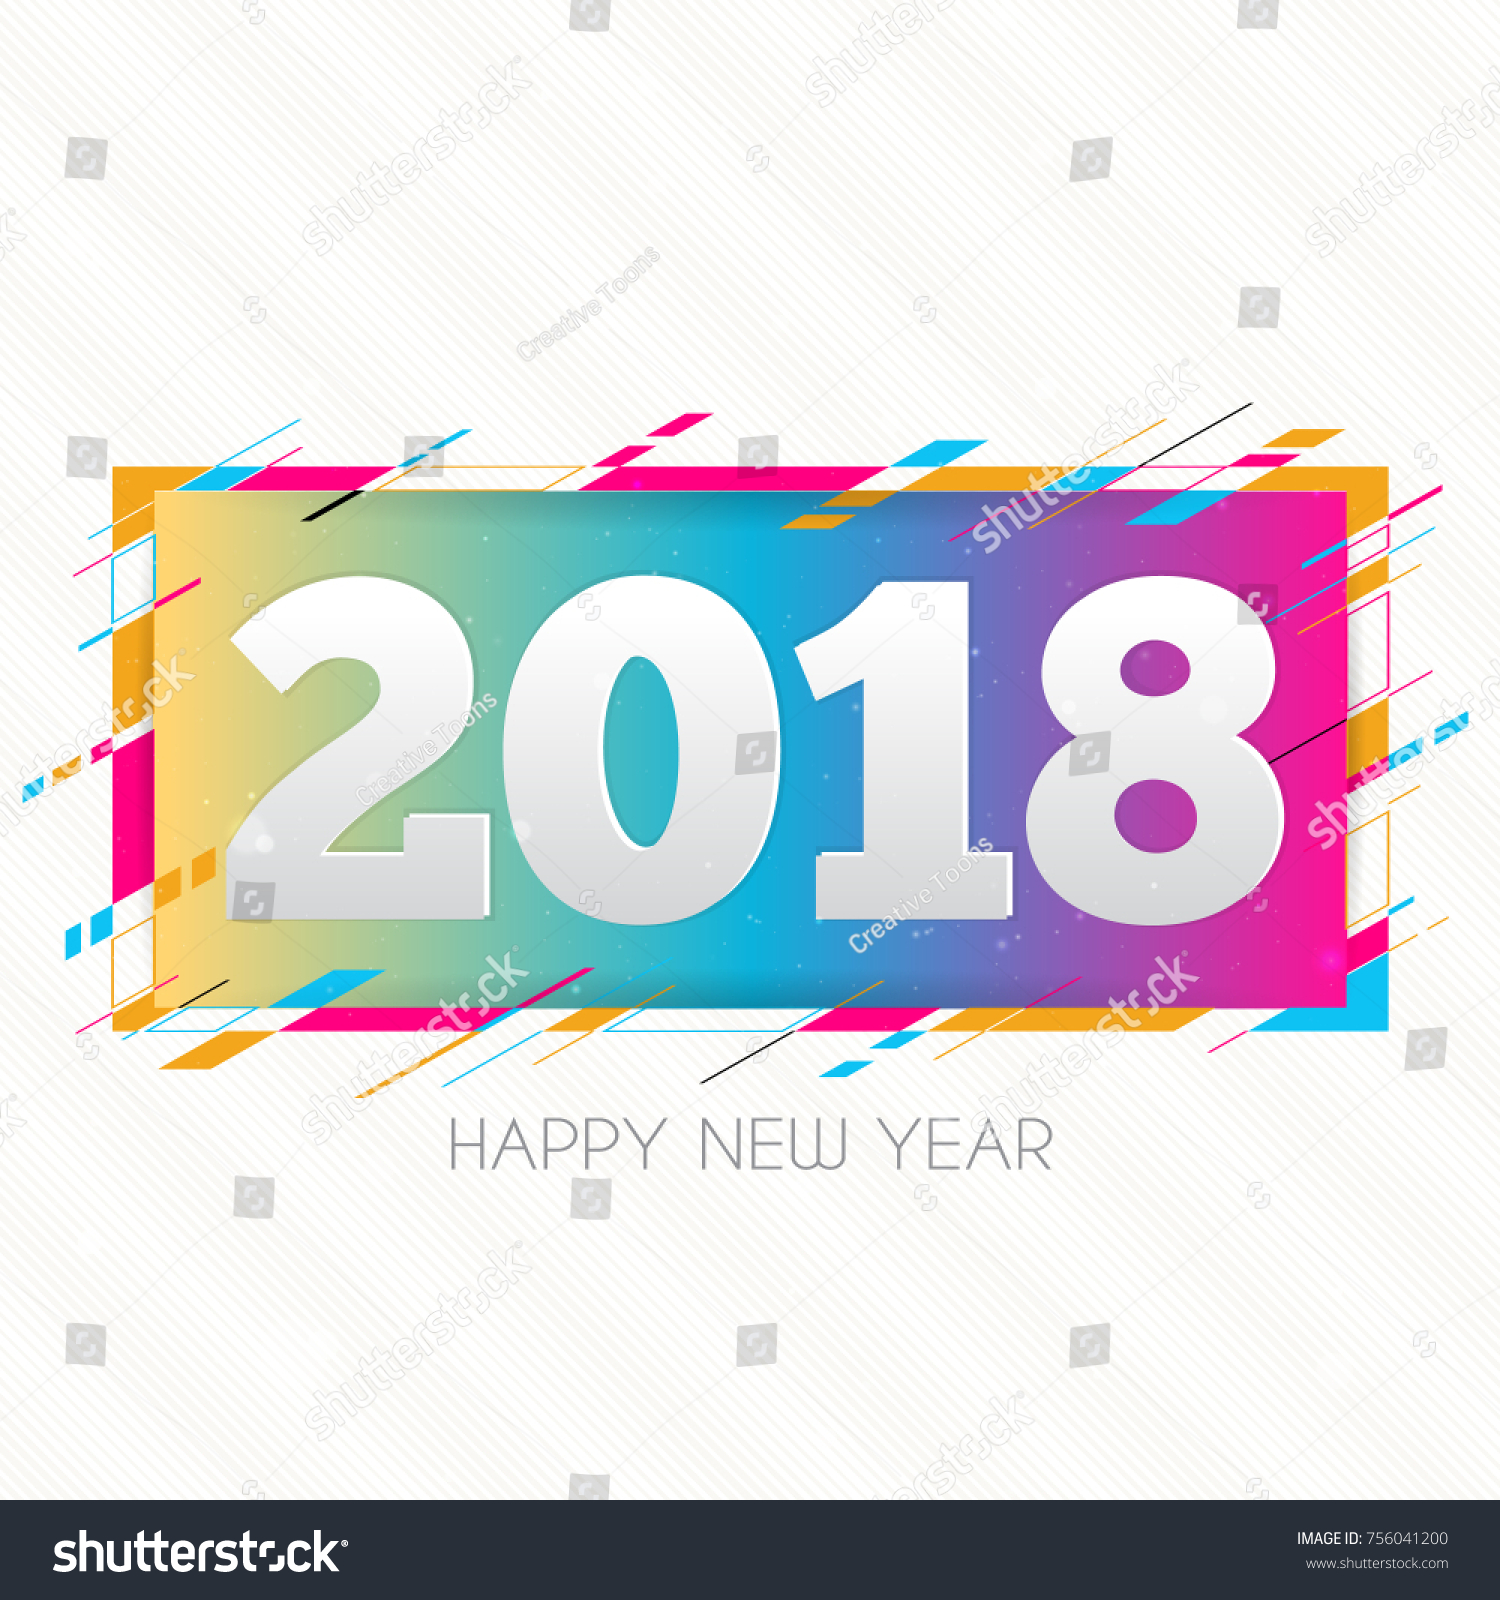 creative happy new year 2018 design card on modern background